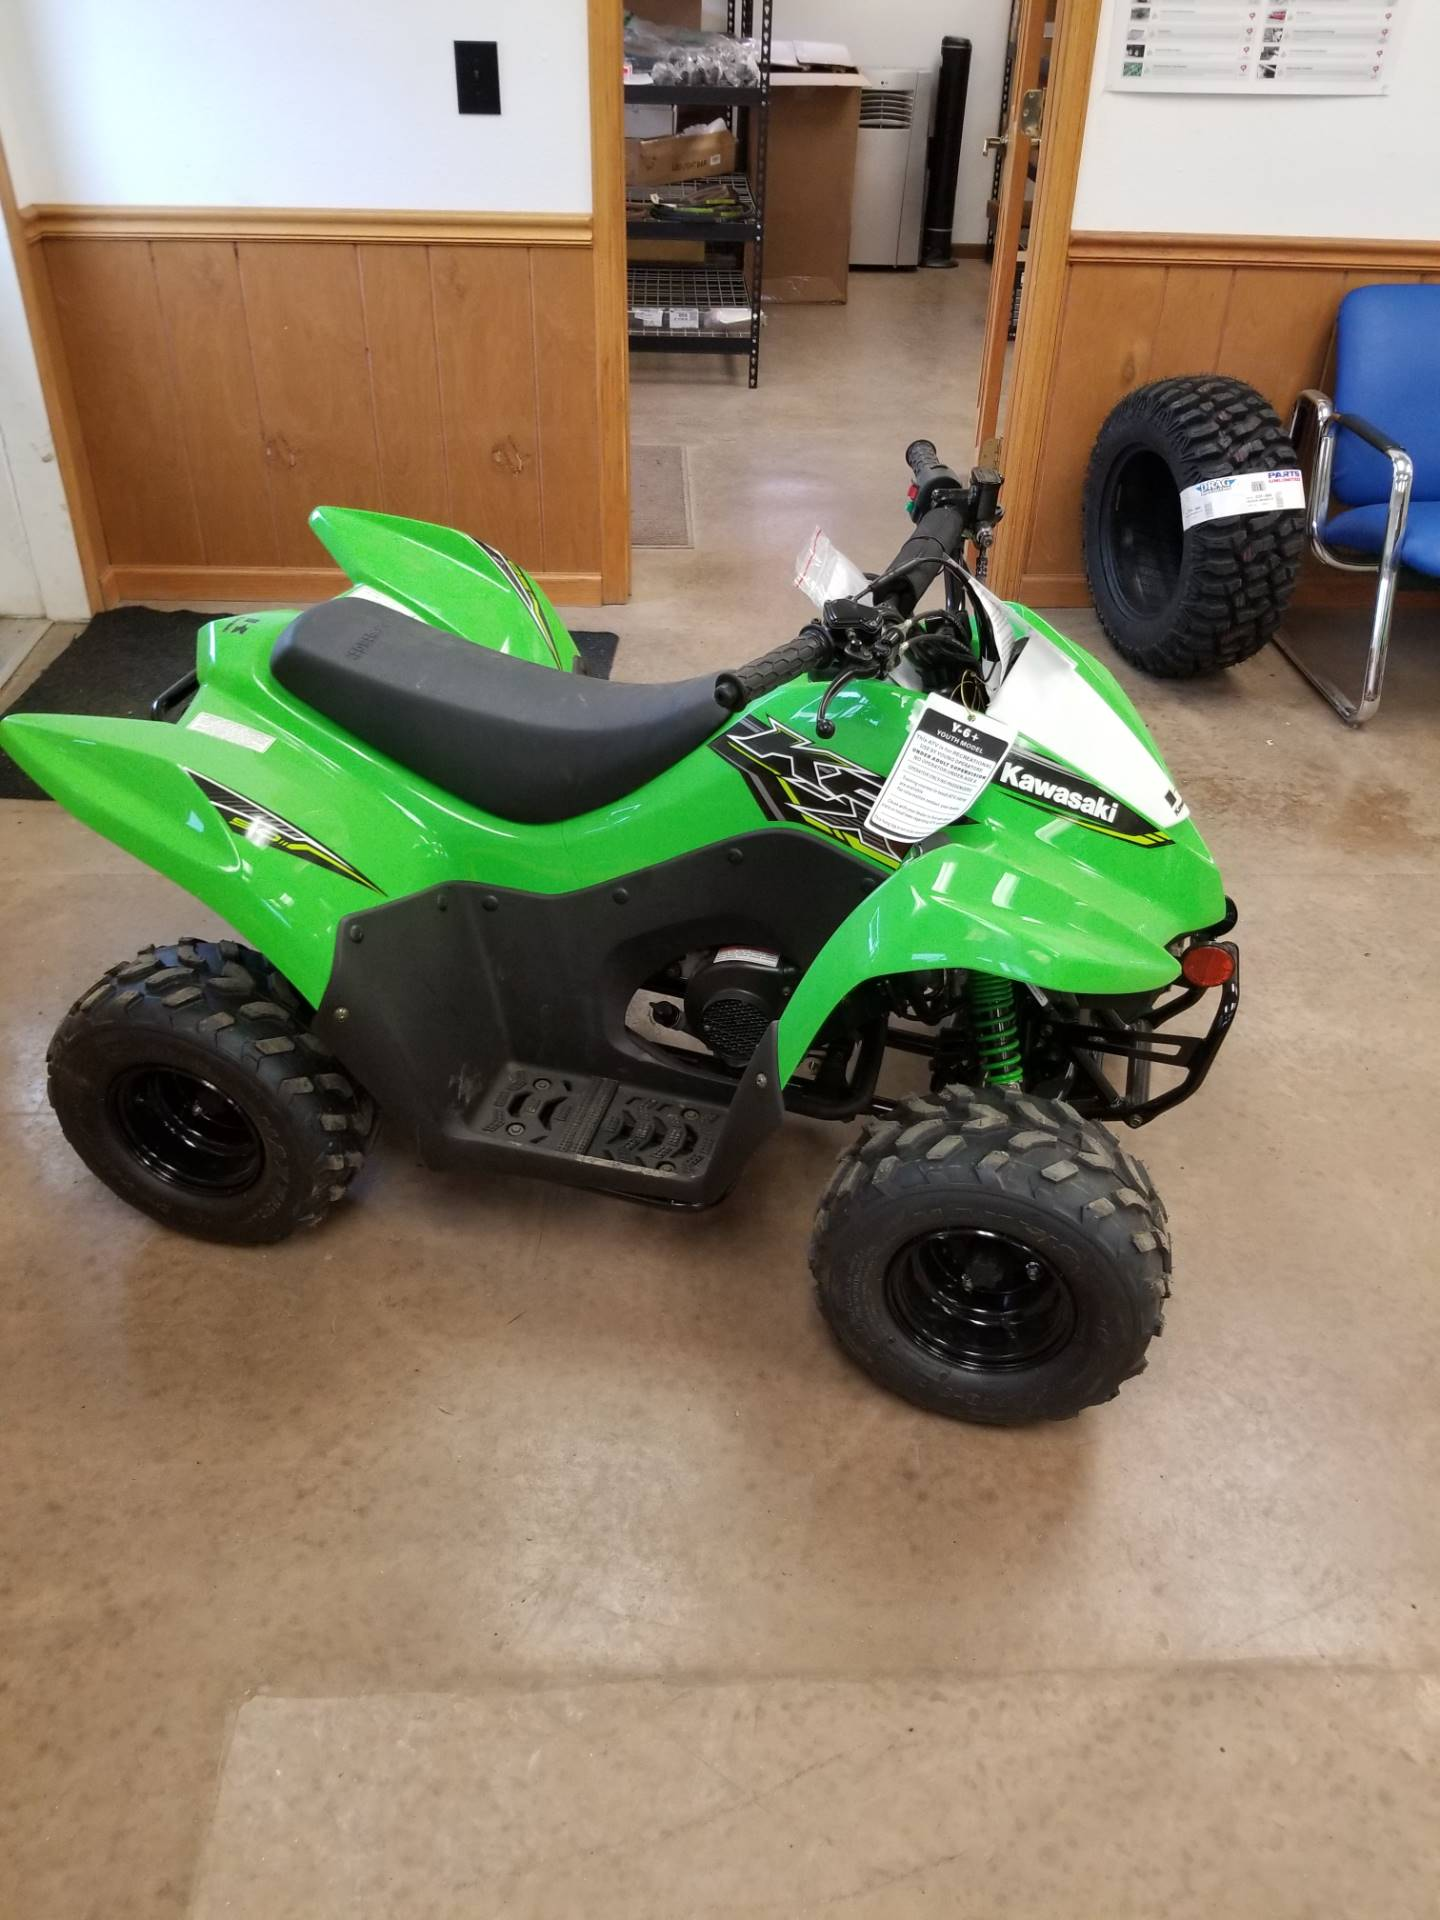 2019 Kawasaki KFX 50 in Hillsboro, Wisconsin - Photo 7